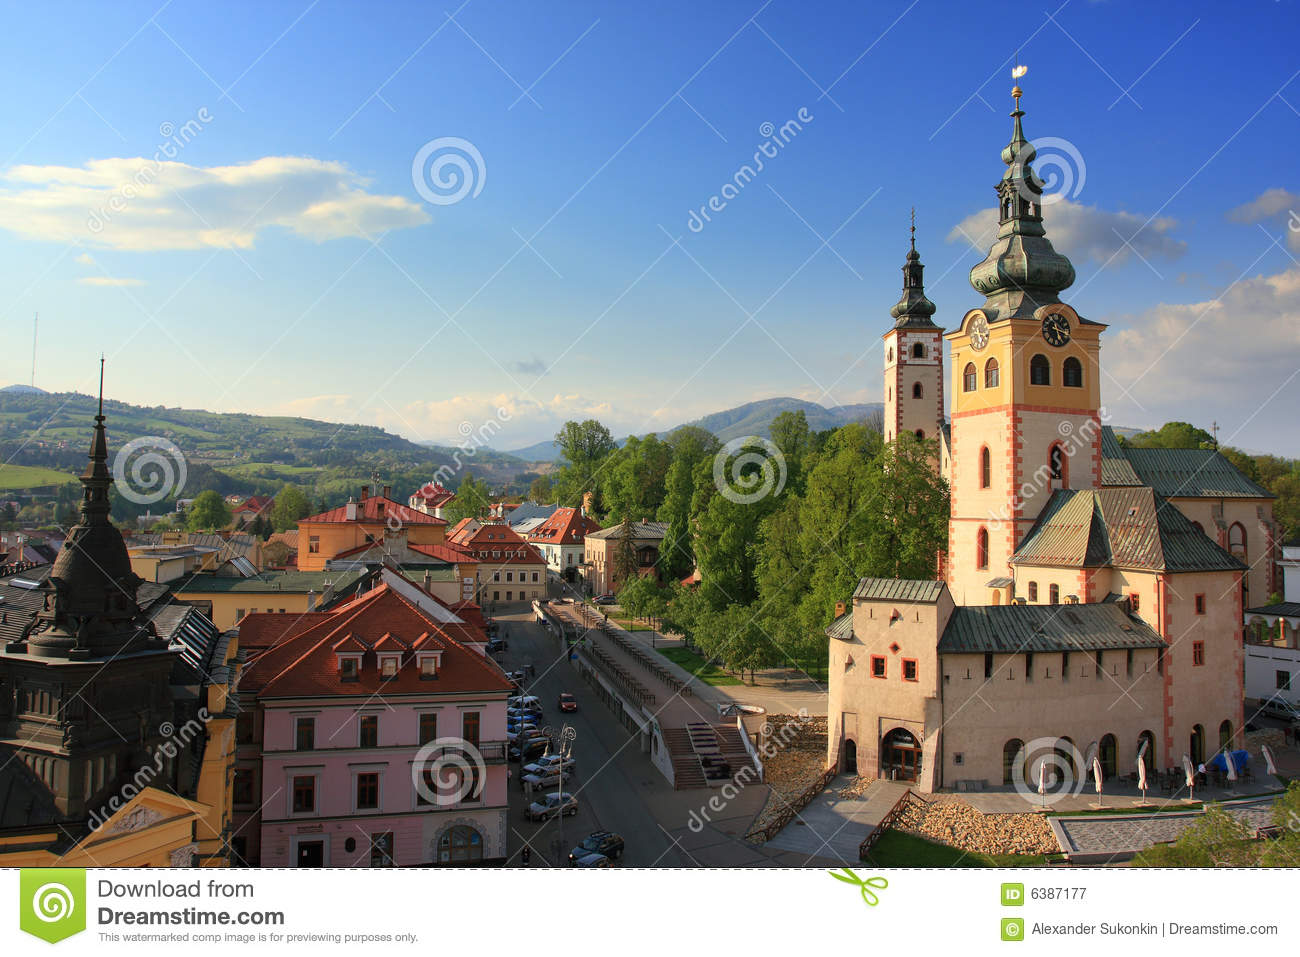 Banska Bystrica, Slovakia view from leaning tower